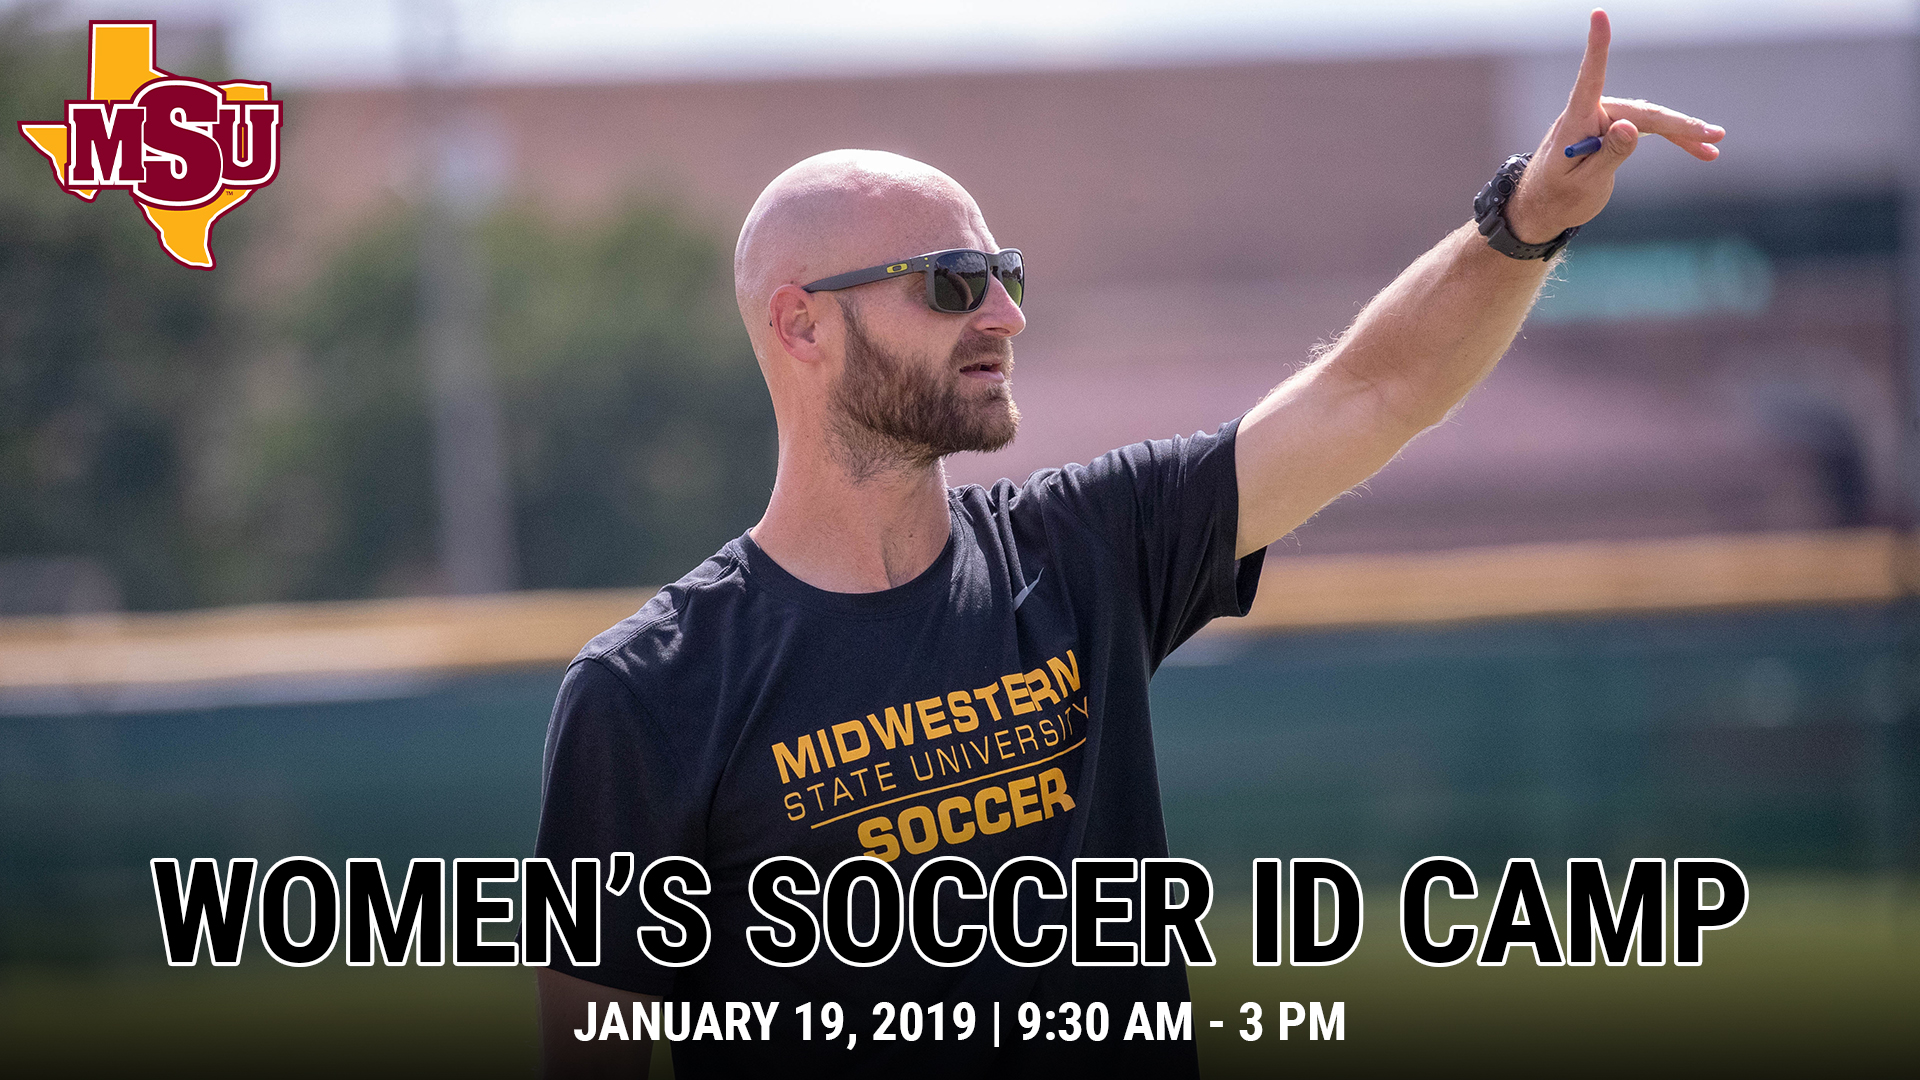 Midwestern State Women's Soccer ID Camp -- Jan. 19, 2019